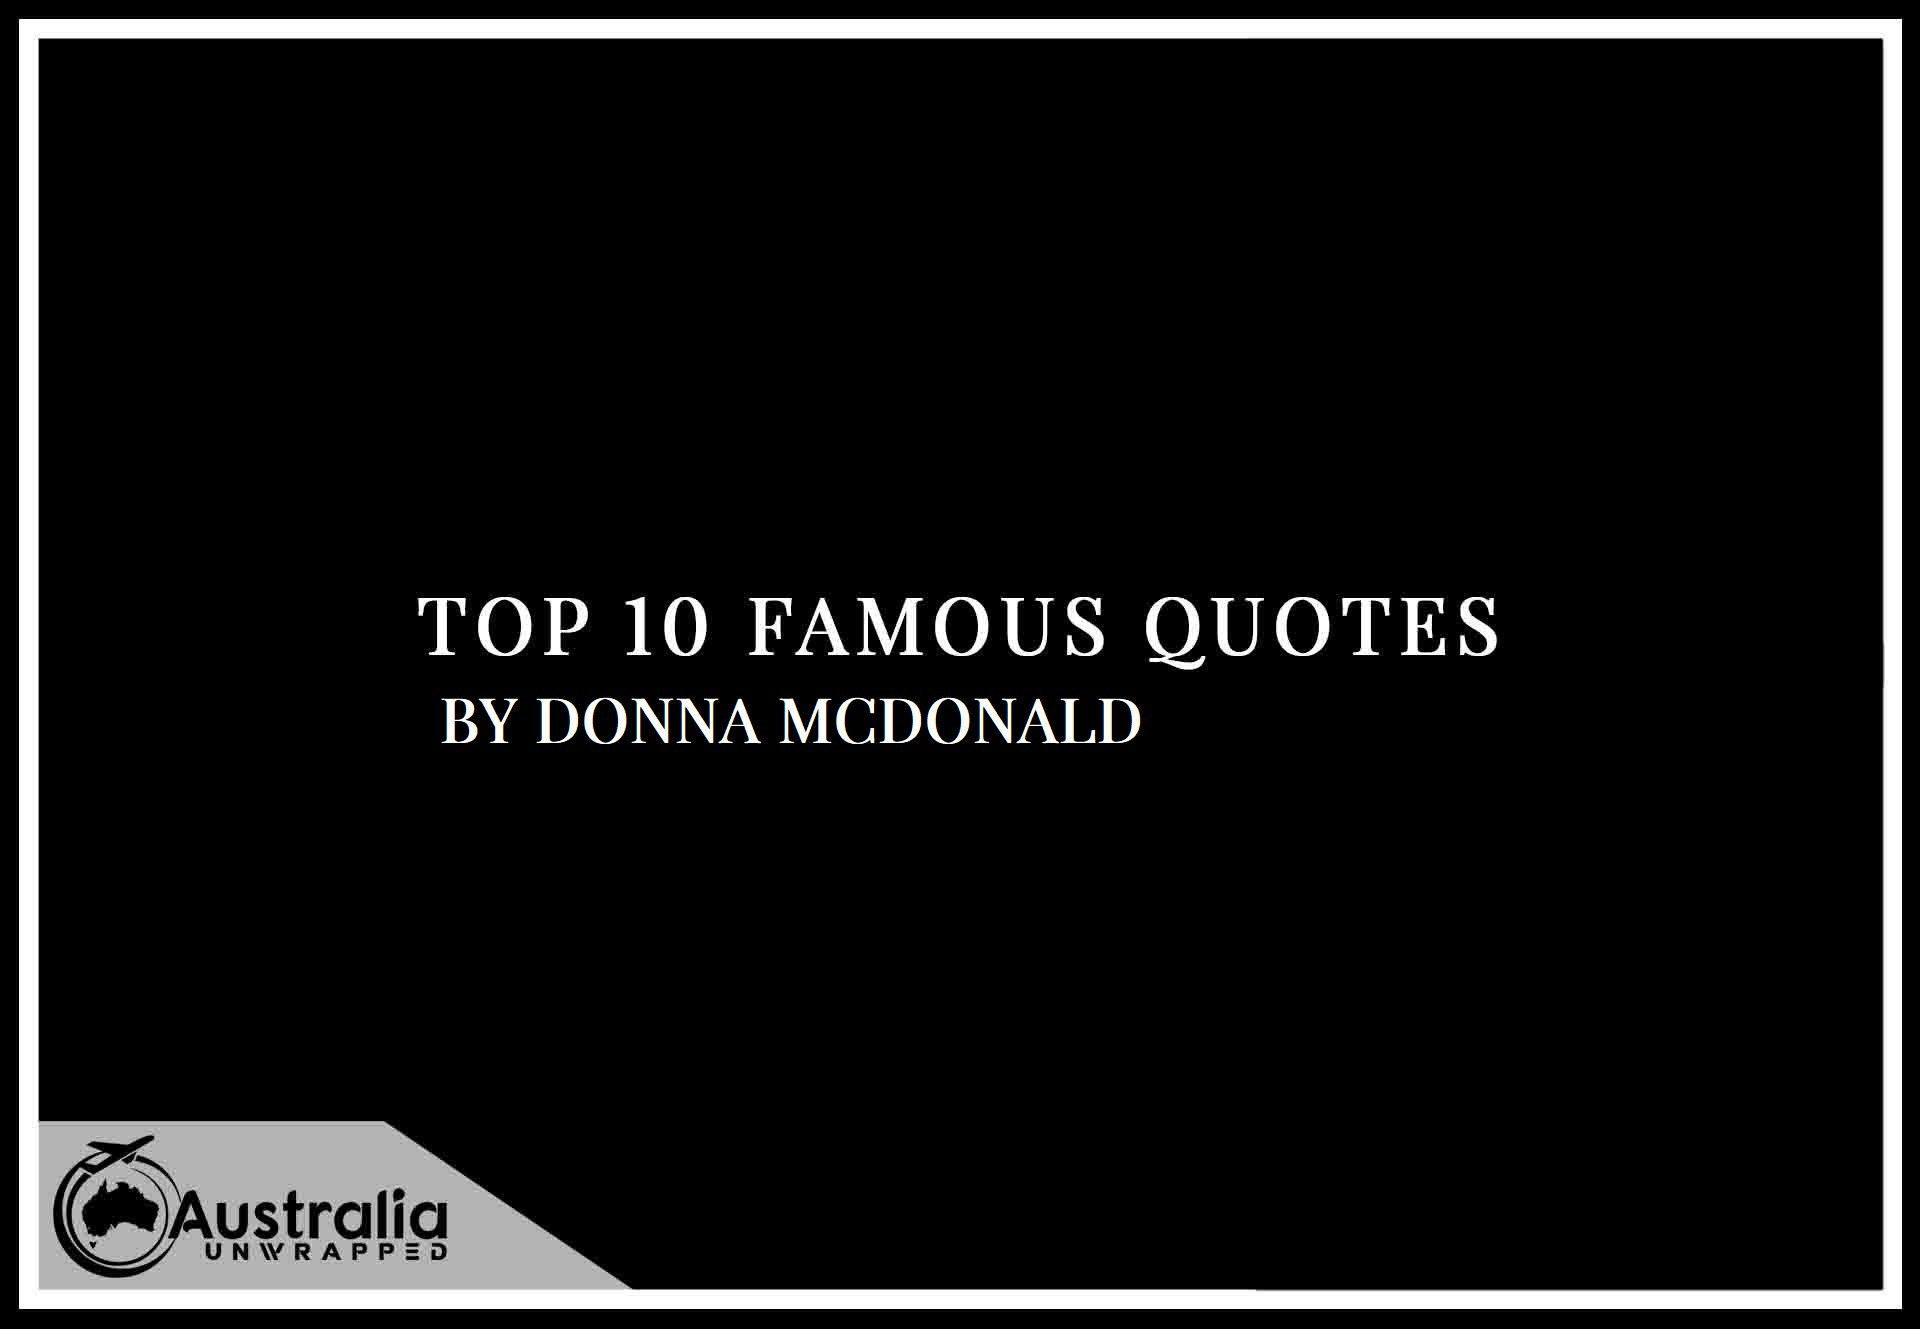 Top 10 Famous Quotes by Author Donna McDonald